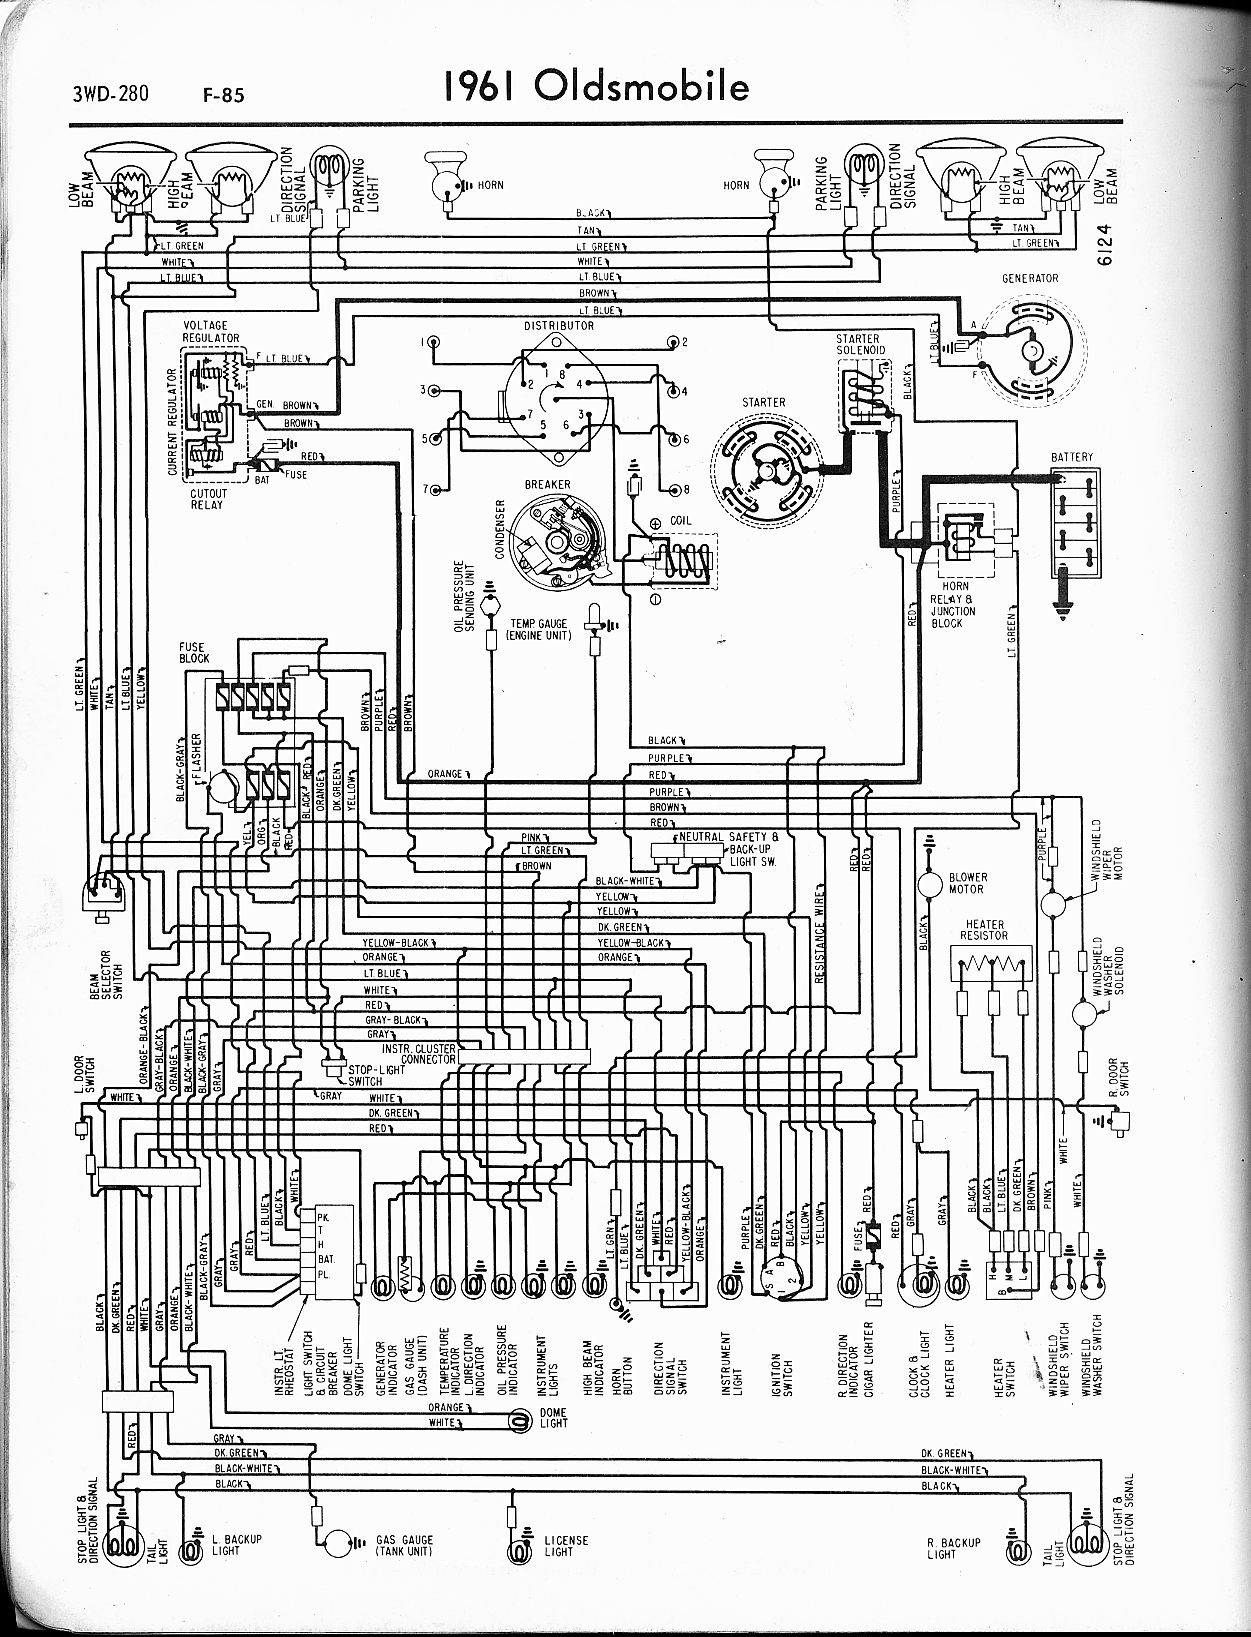 MWire5765 280 oldsmobile wiring diagrams the old car manual project